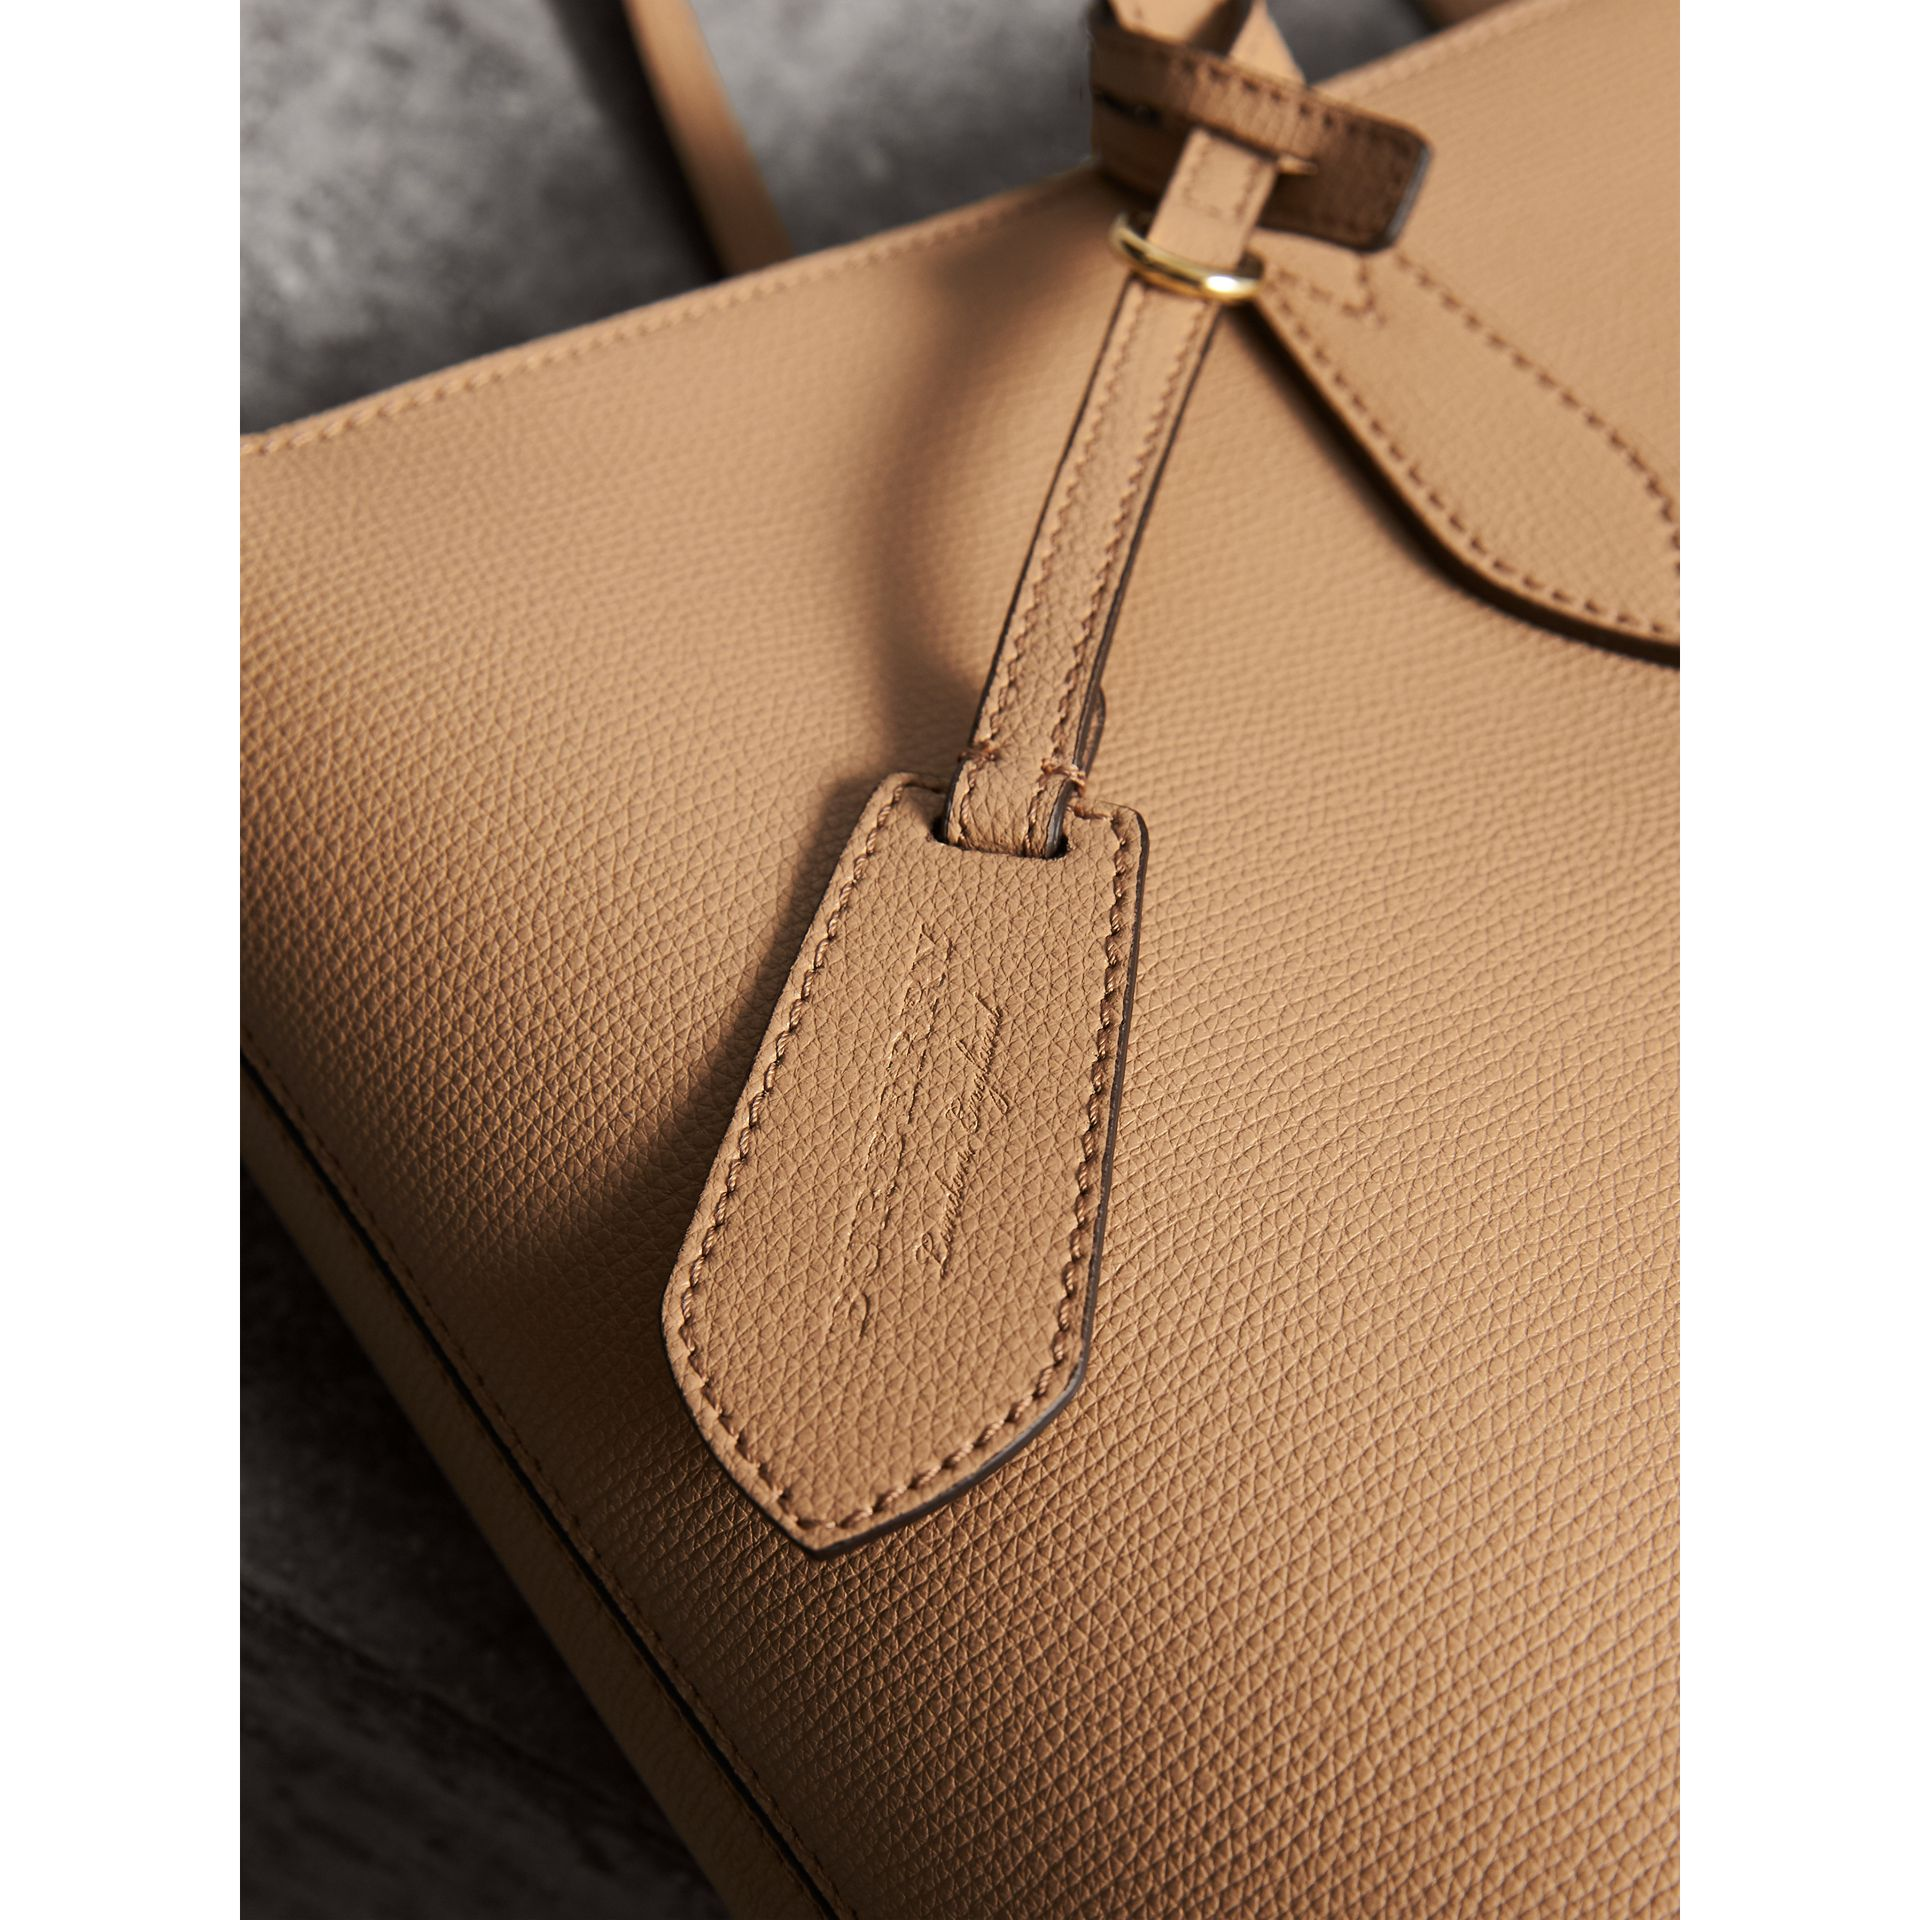 Medium Coated Leather Tote in Mid Camel - Women | Burberry - gallery image 2